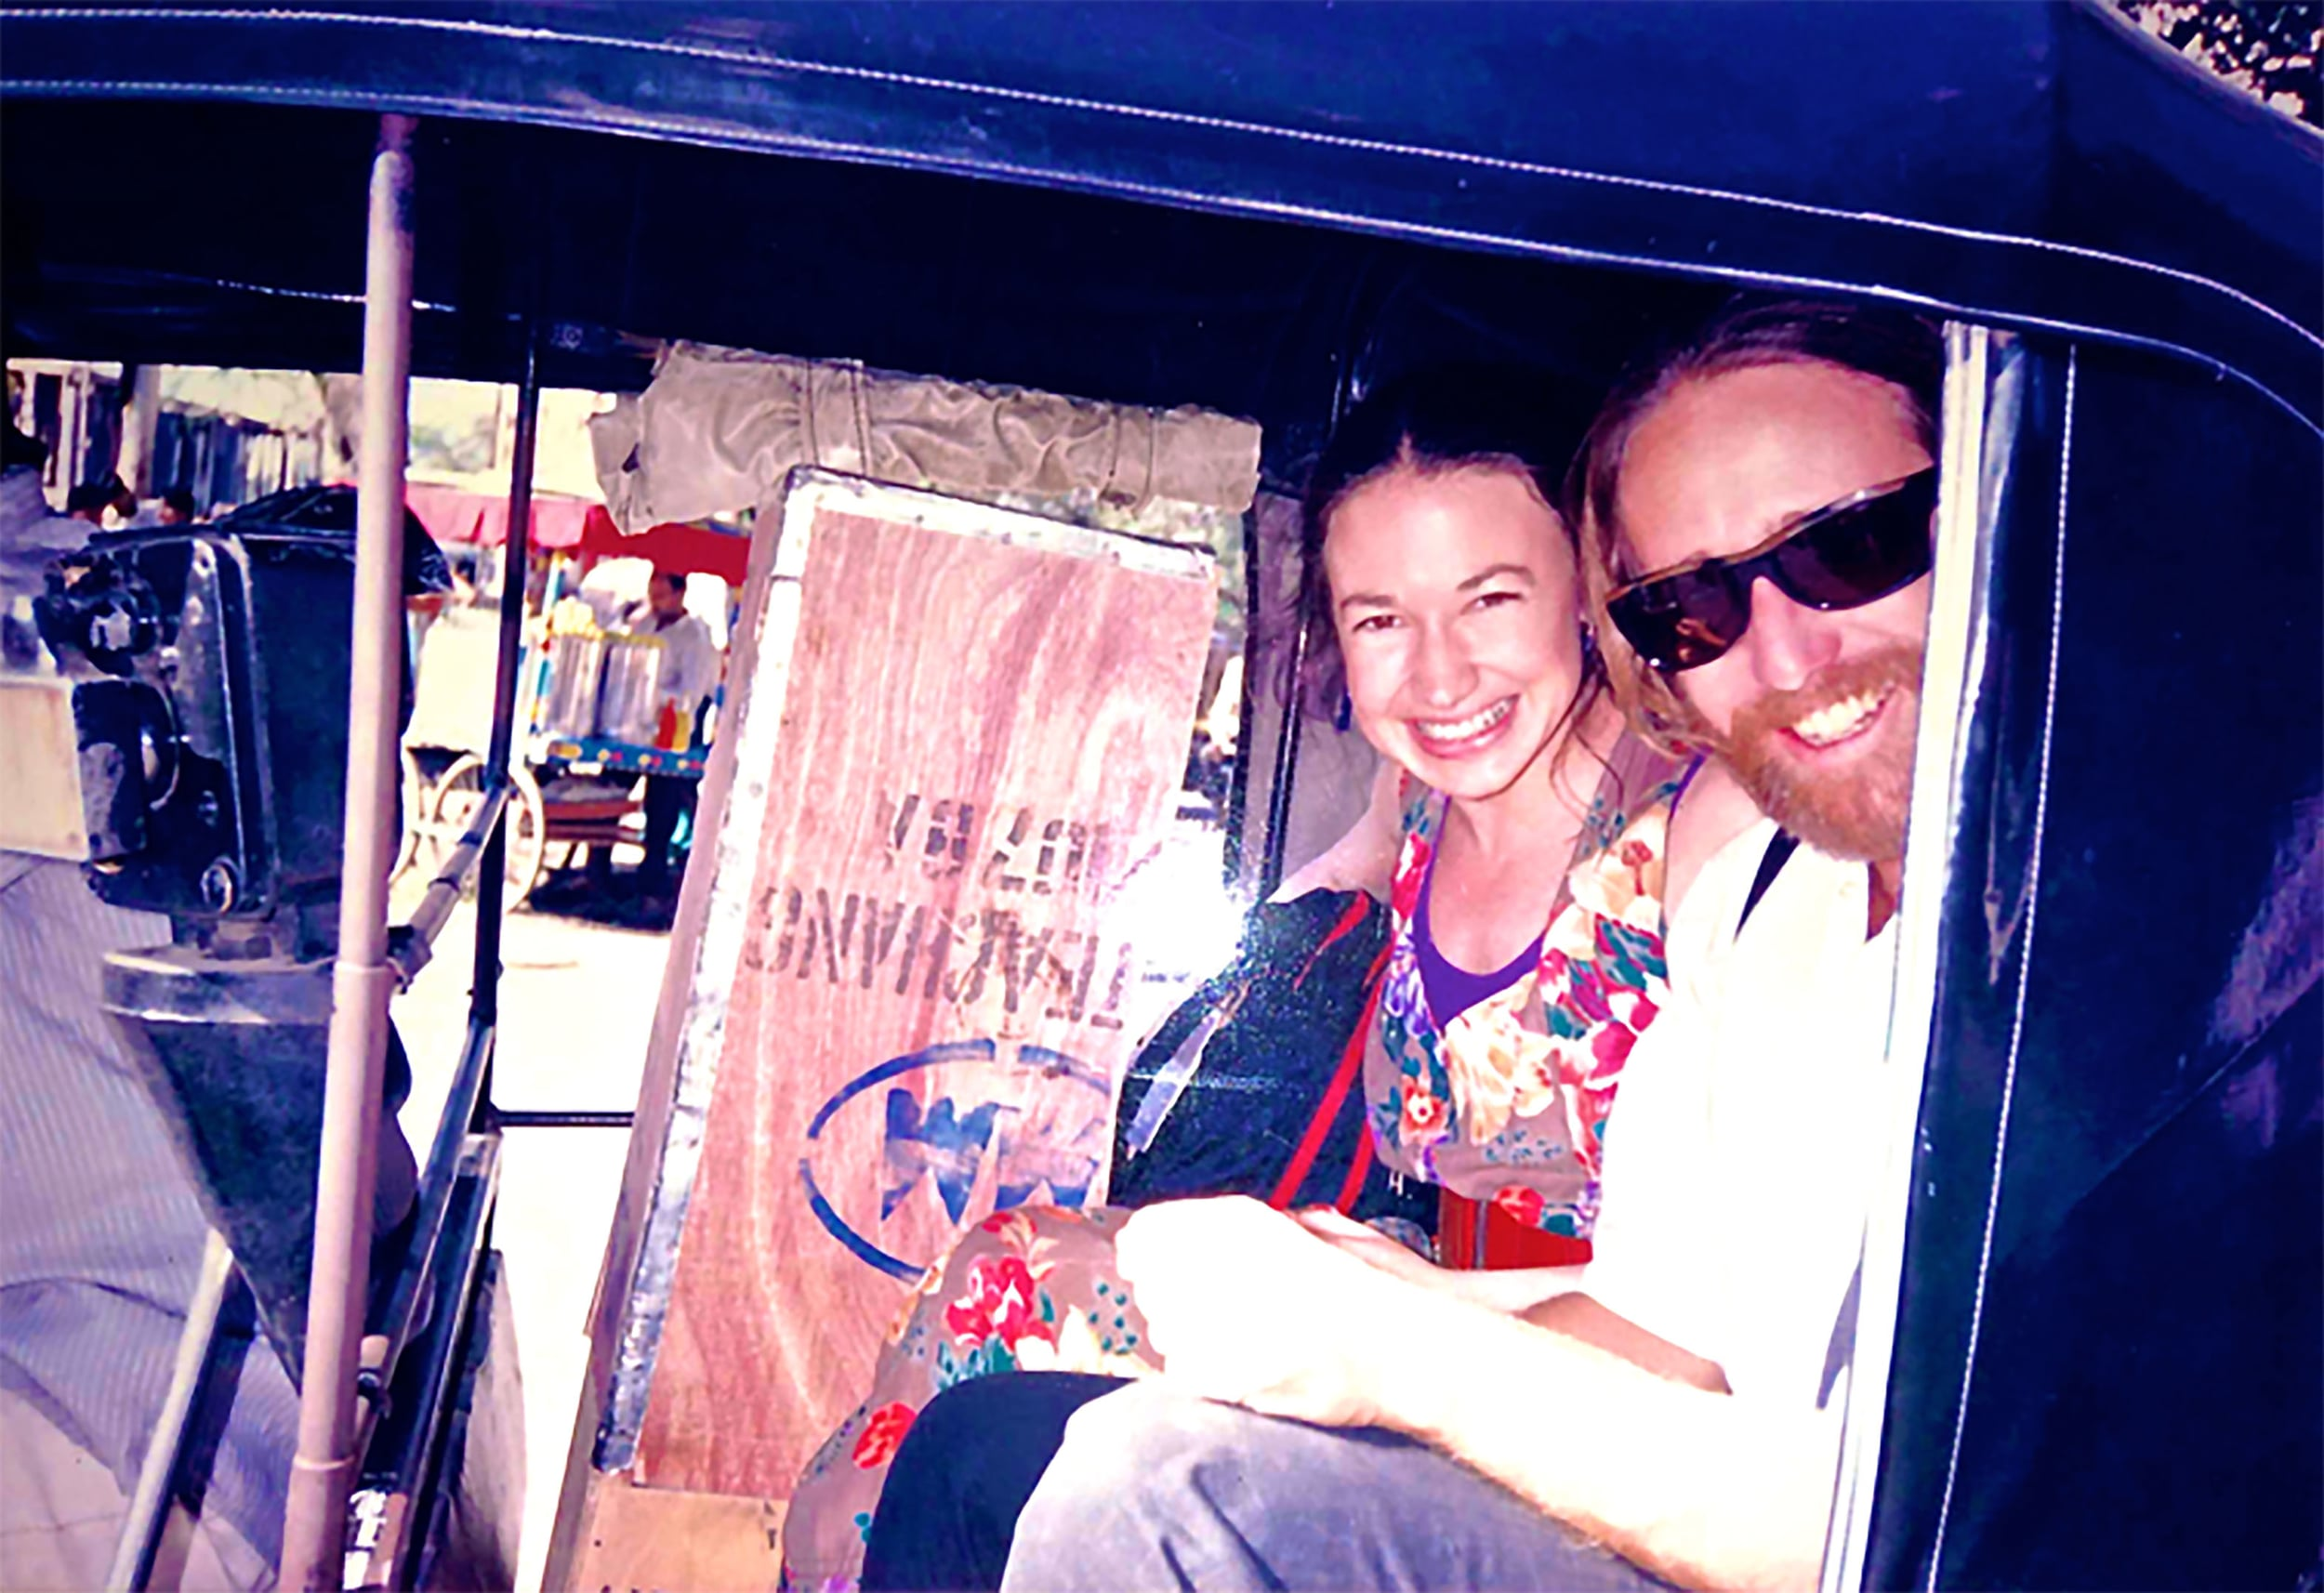 The author (aka Sw. Jivan Joke) and his lovely friend and companion Puja Melissa (aka Ma Bliss Abyss) arriving again at that Gateless Gate, about to embark on more stories for the Cosmic Joke records. Circa Timeless...